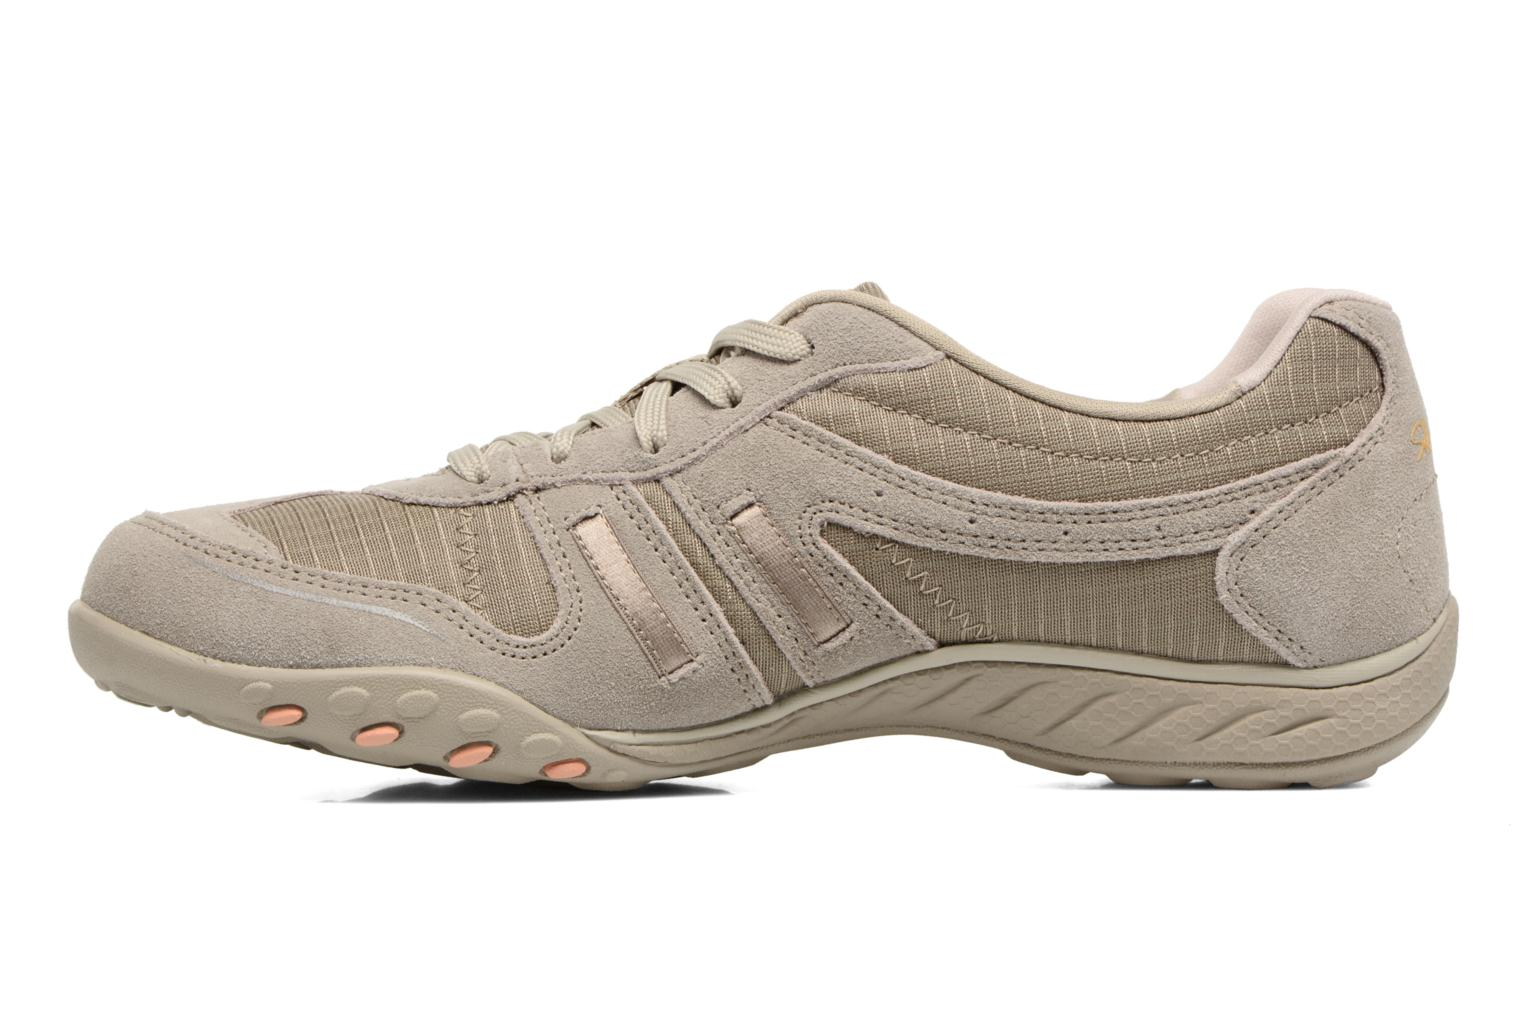 Baskets Skechers Breathe-Easy - Jackpot 22532 Beige vue face